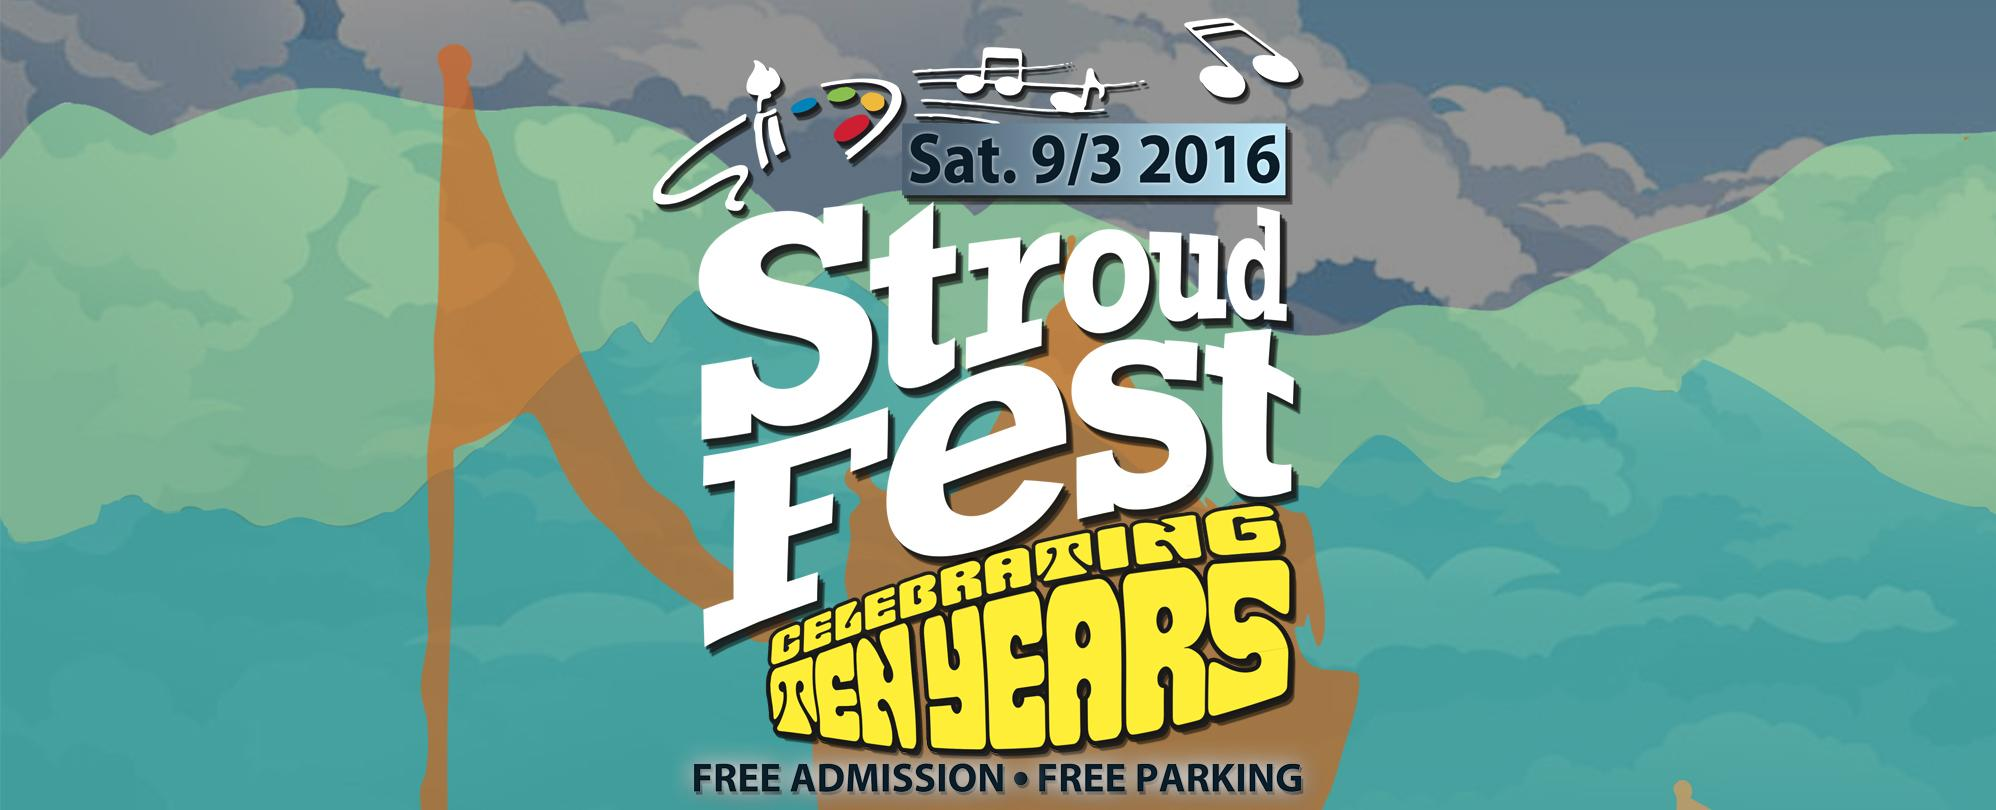 StroudFest 2016 - Celebrating 10 years!